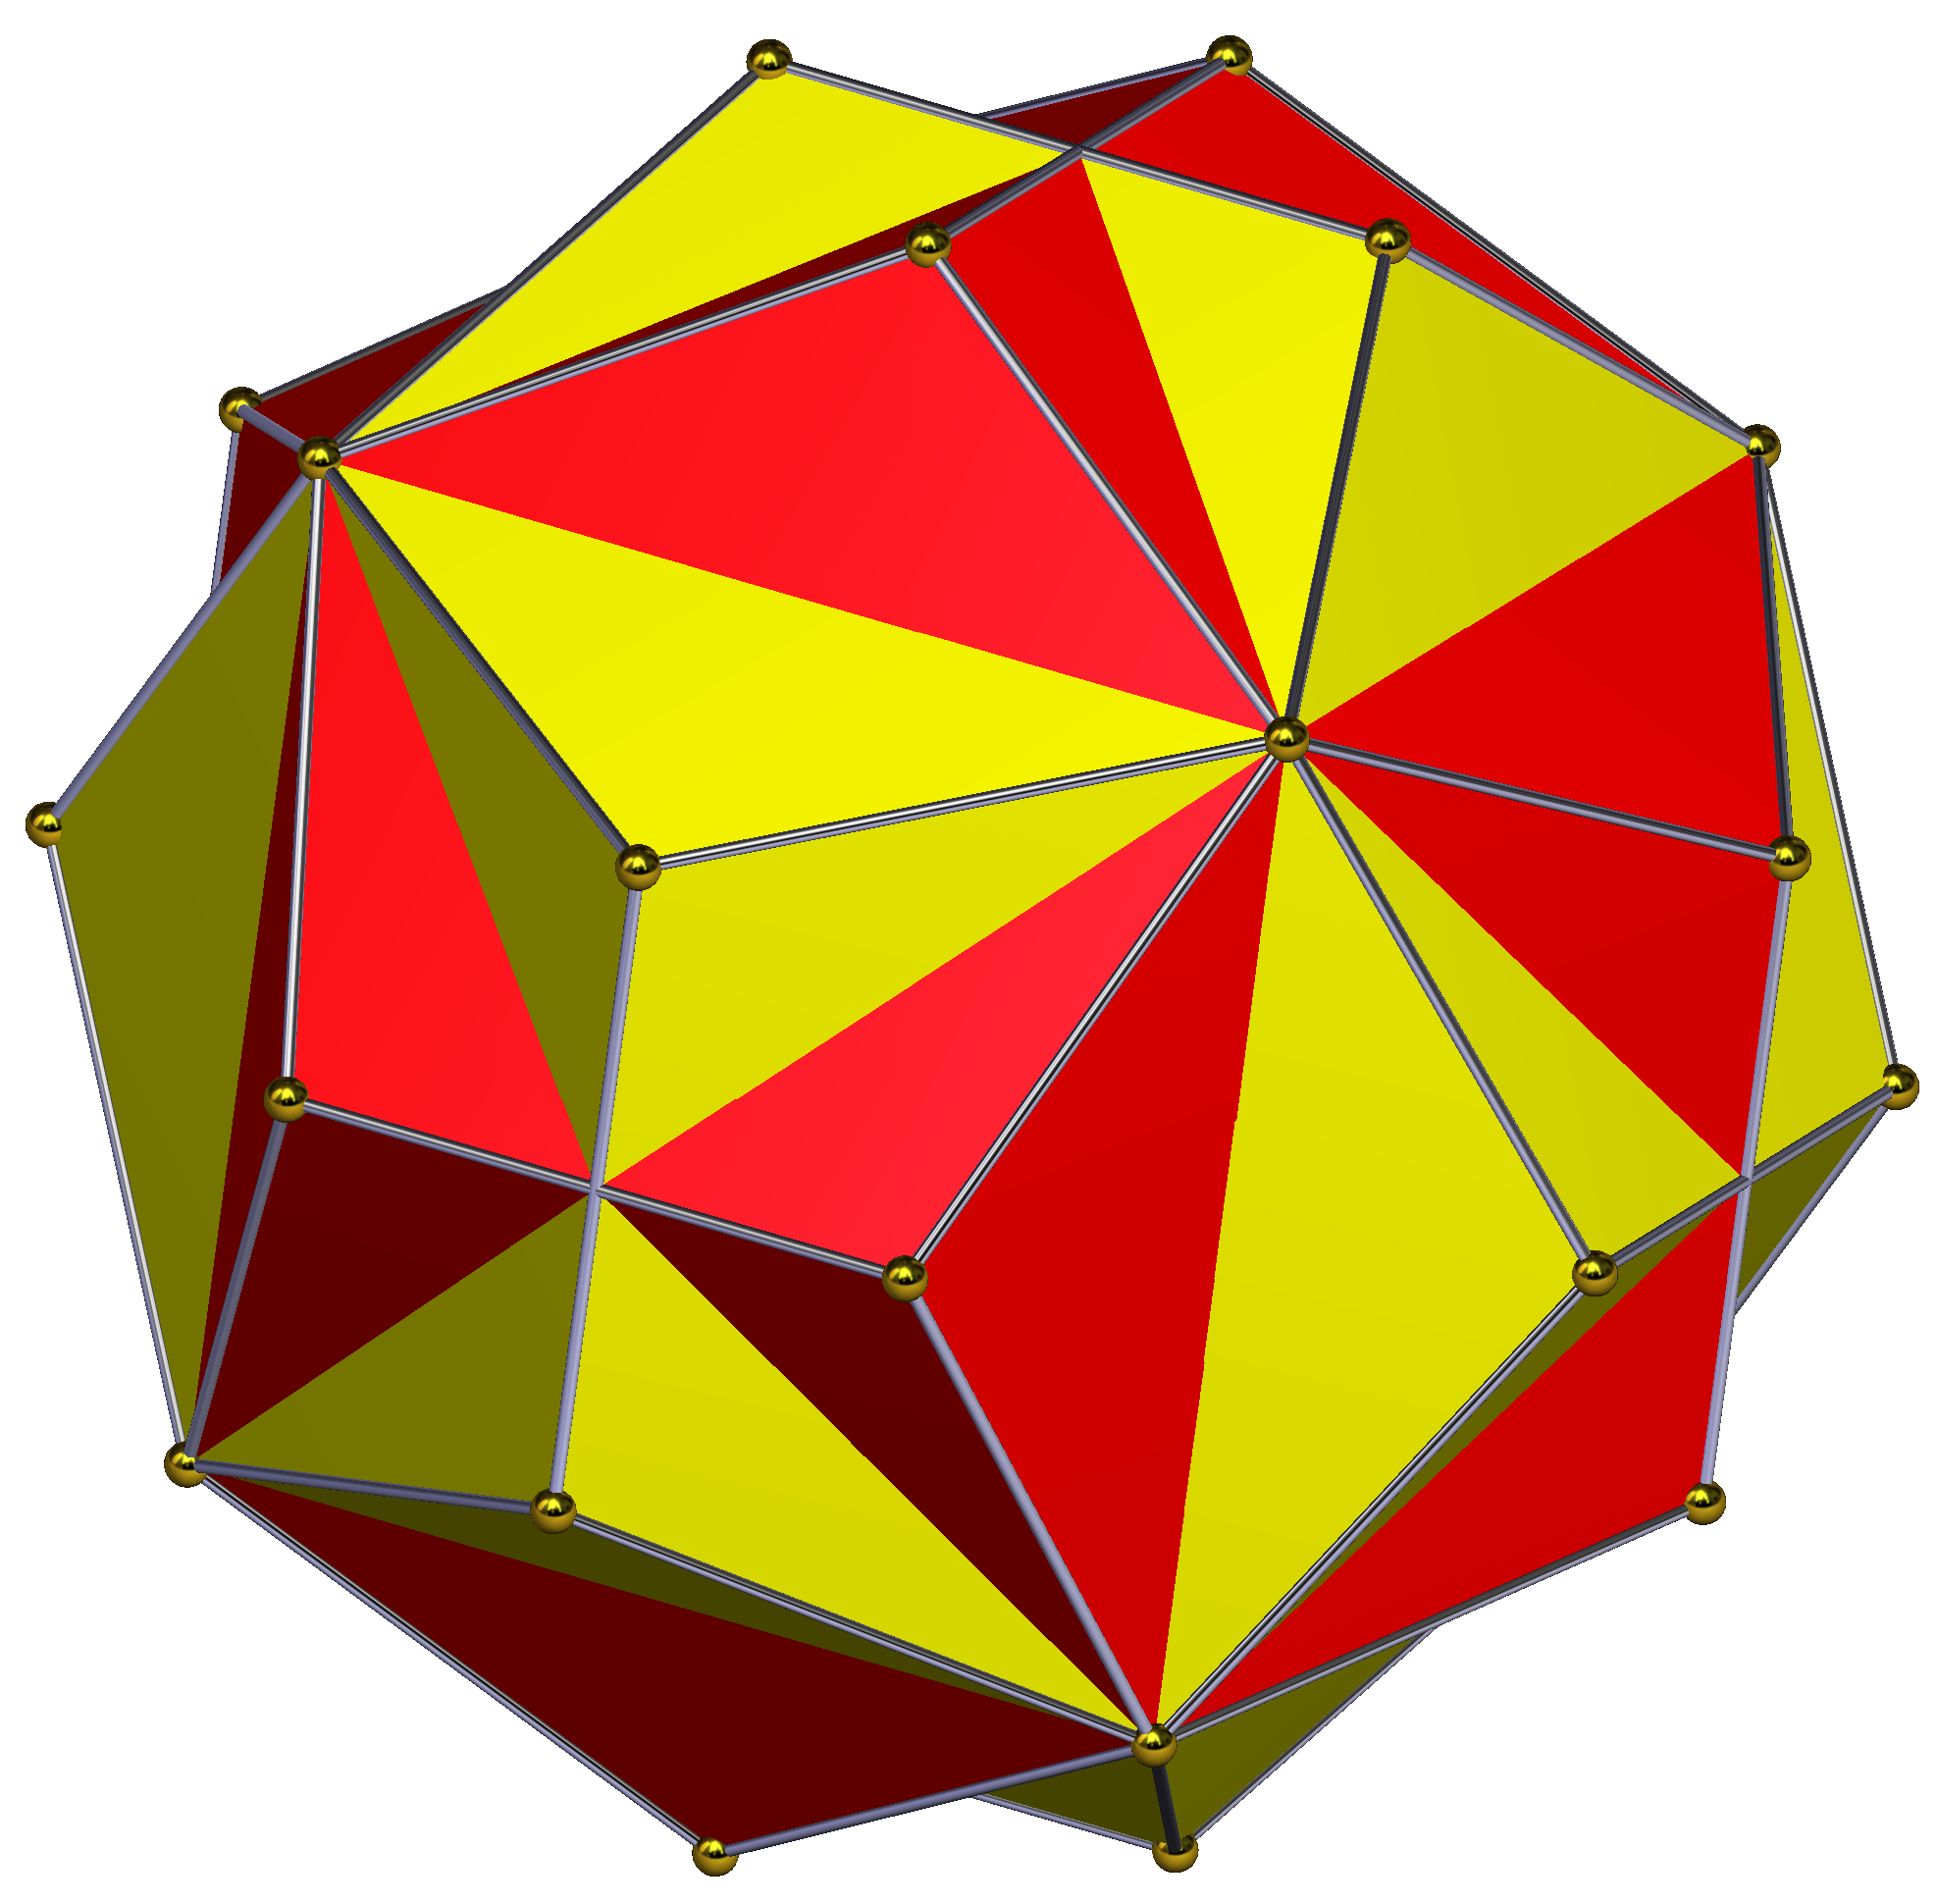 Dodecahedron.